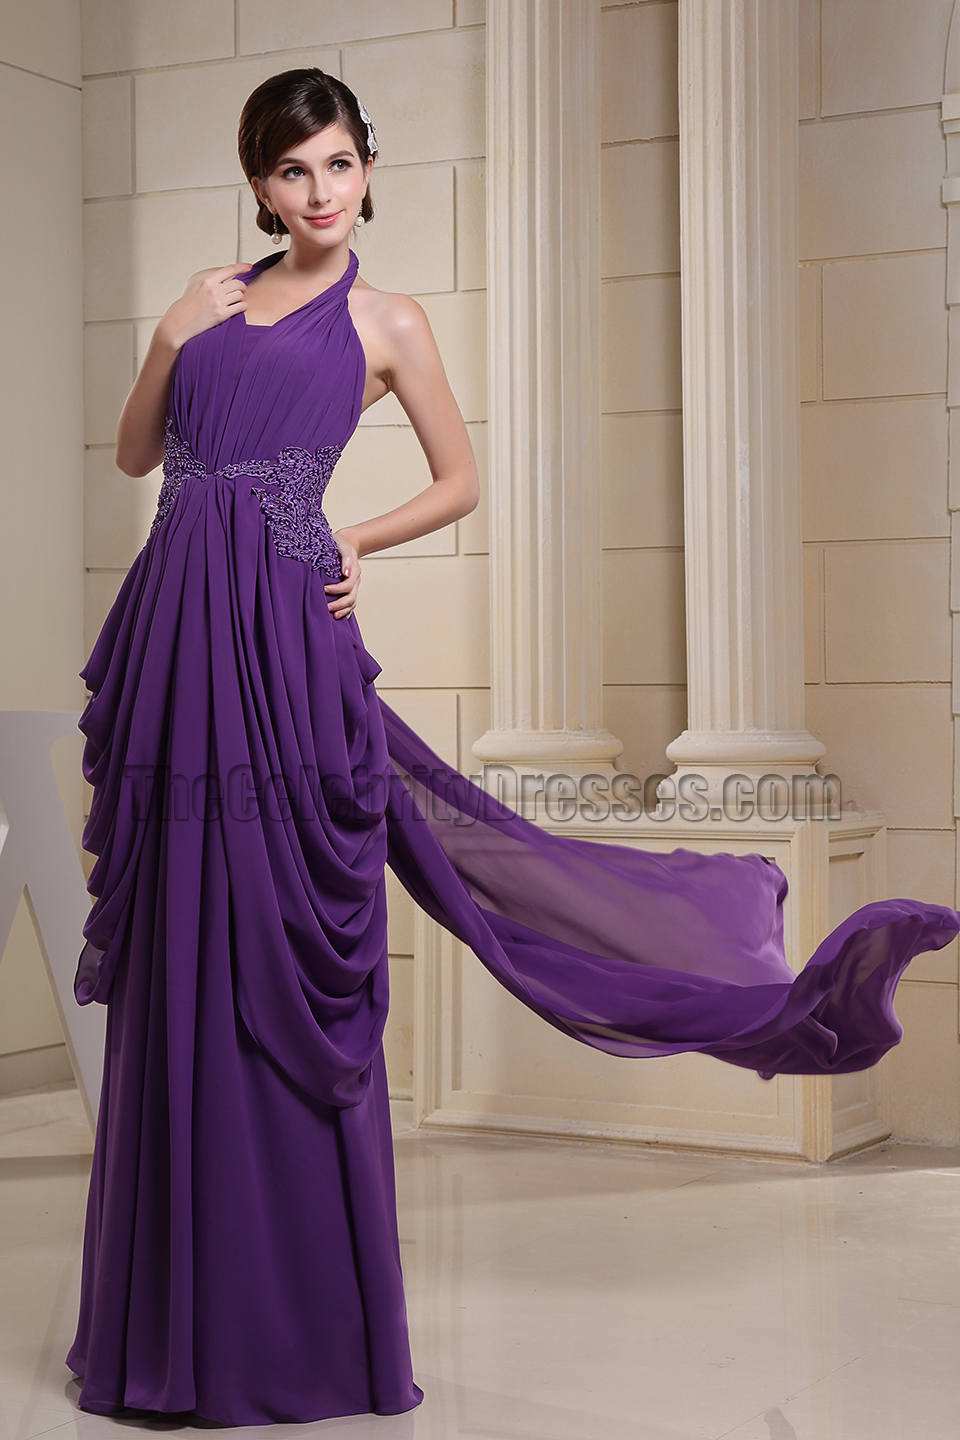 Regency Halter Chiffon Prom Gown Formal Evening Dresses  TheCelebrityDresses